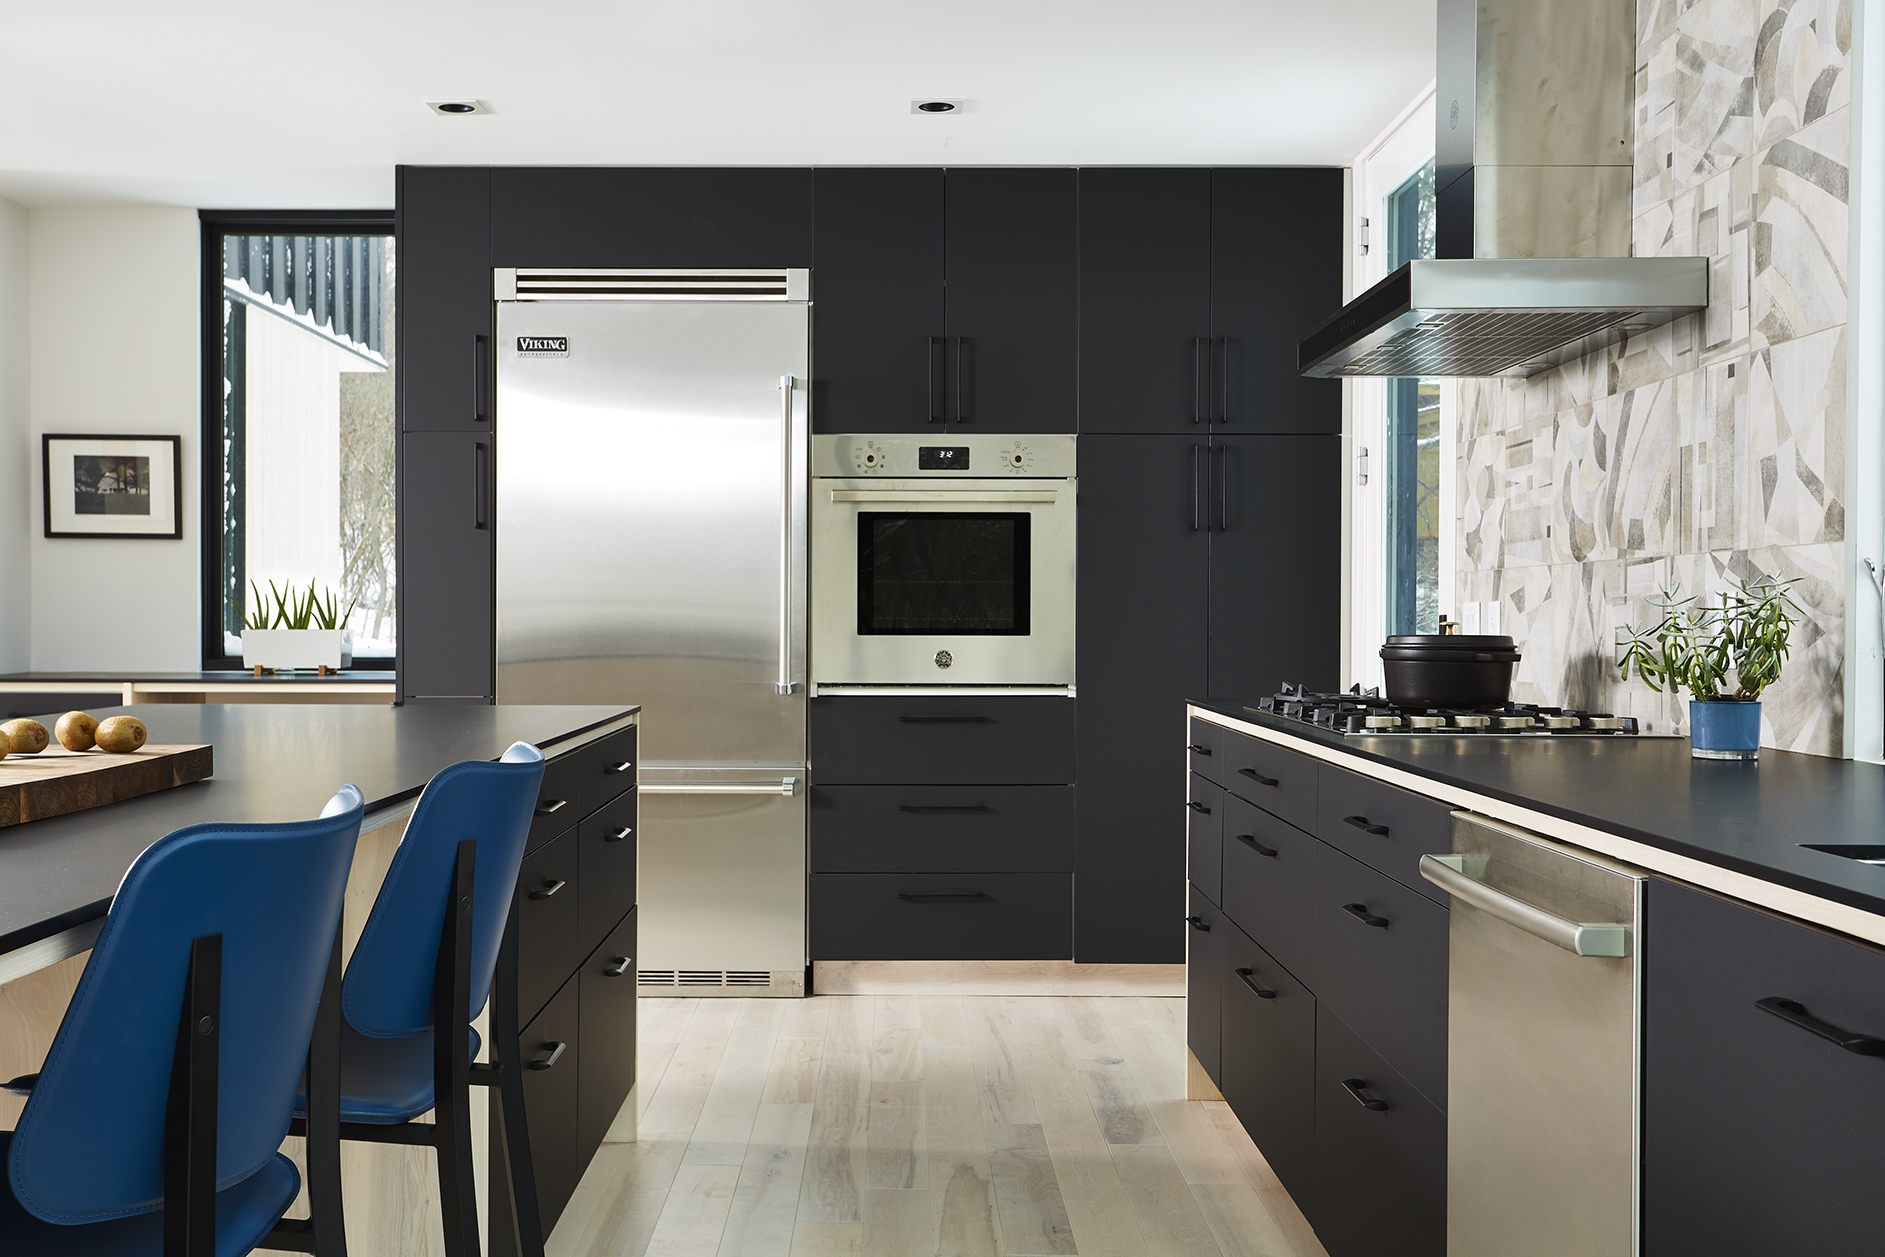 Modern monochromatic kitchen renovation with black cabinetry and wood accents